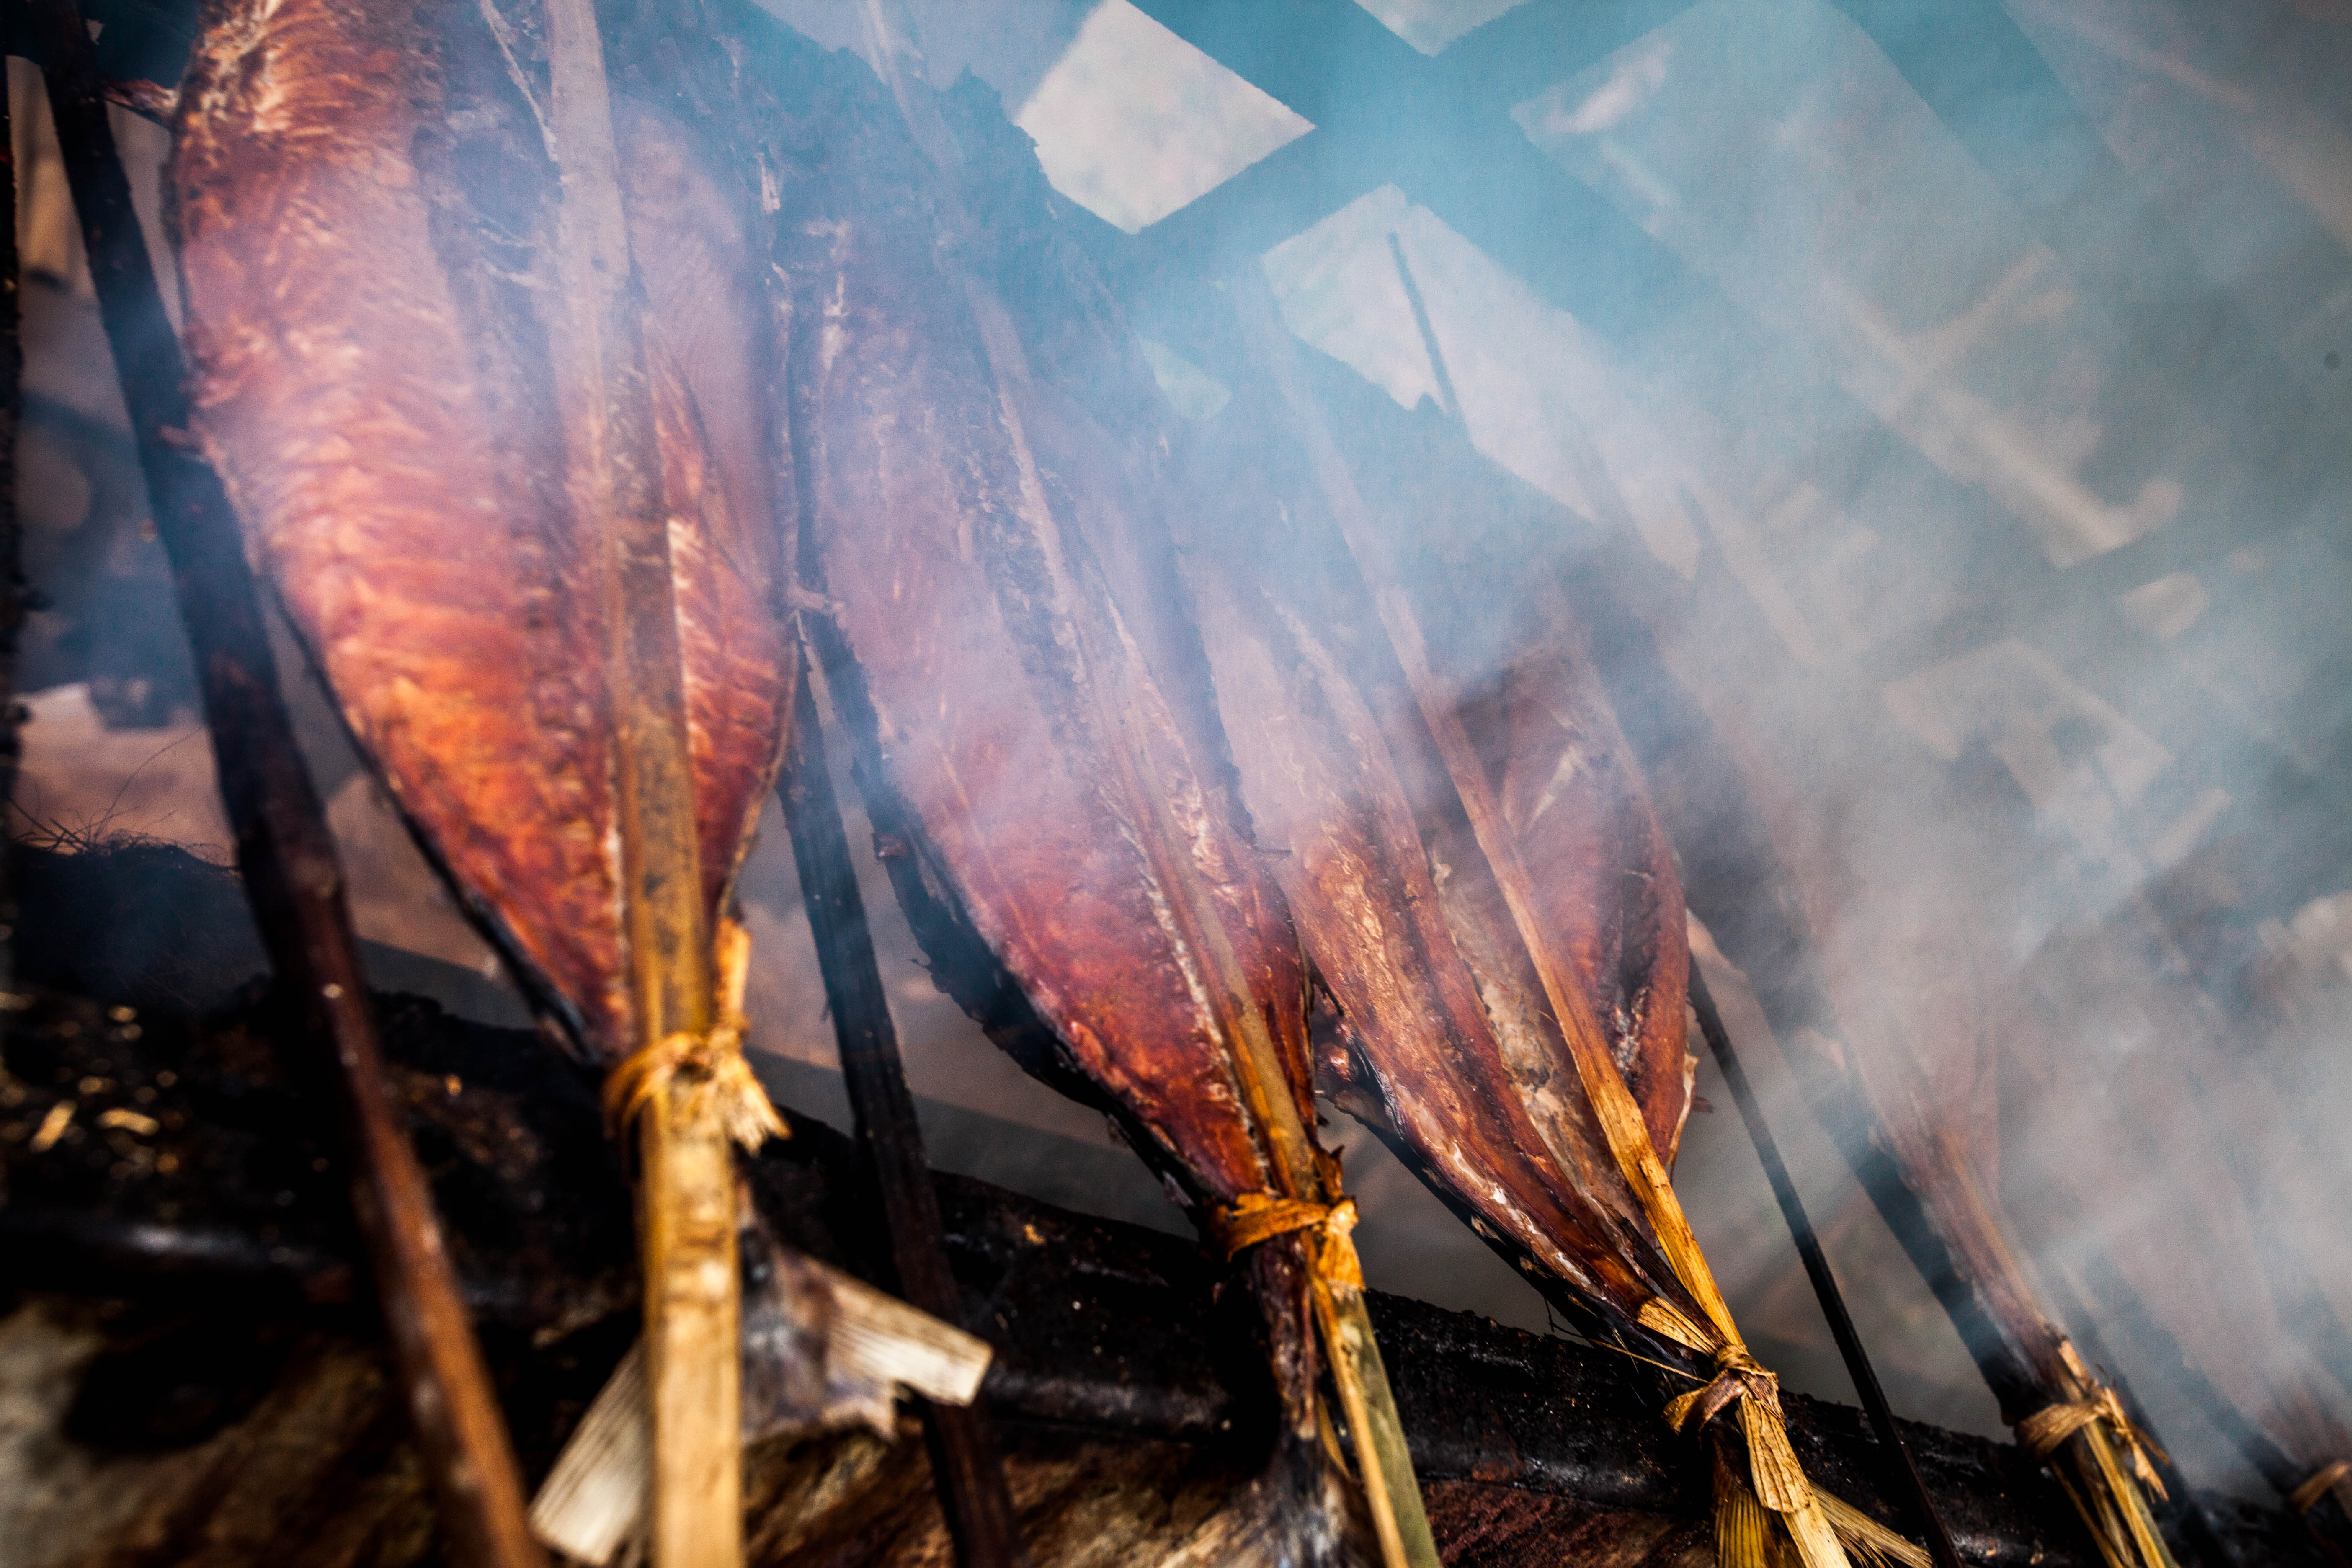 smoked skipjack tuna tied onto wooden poles, smoke obscures half of the picture